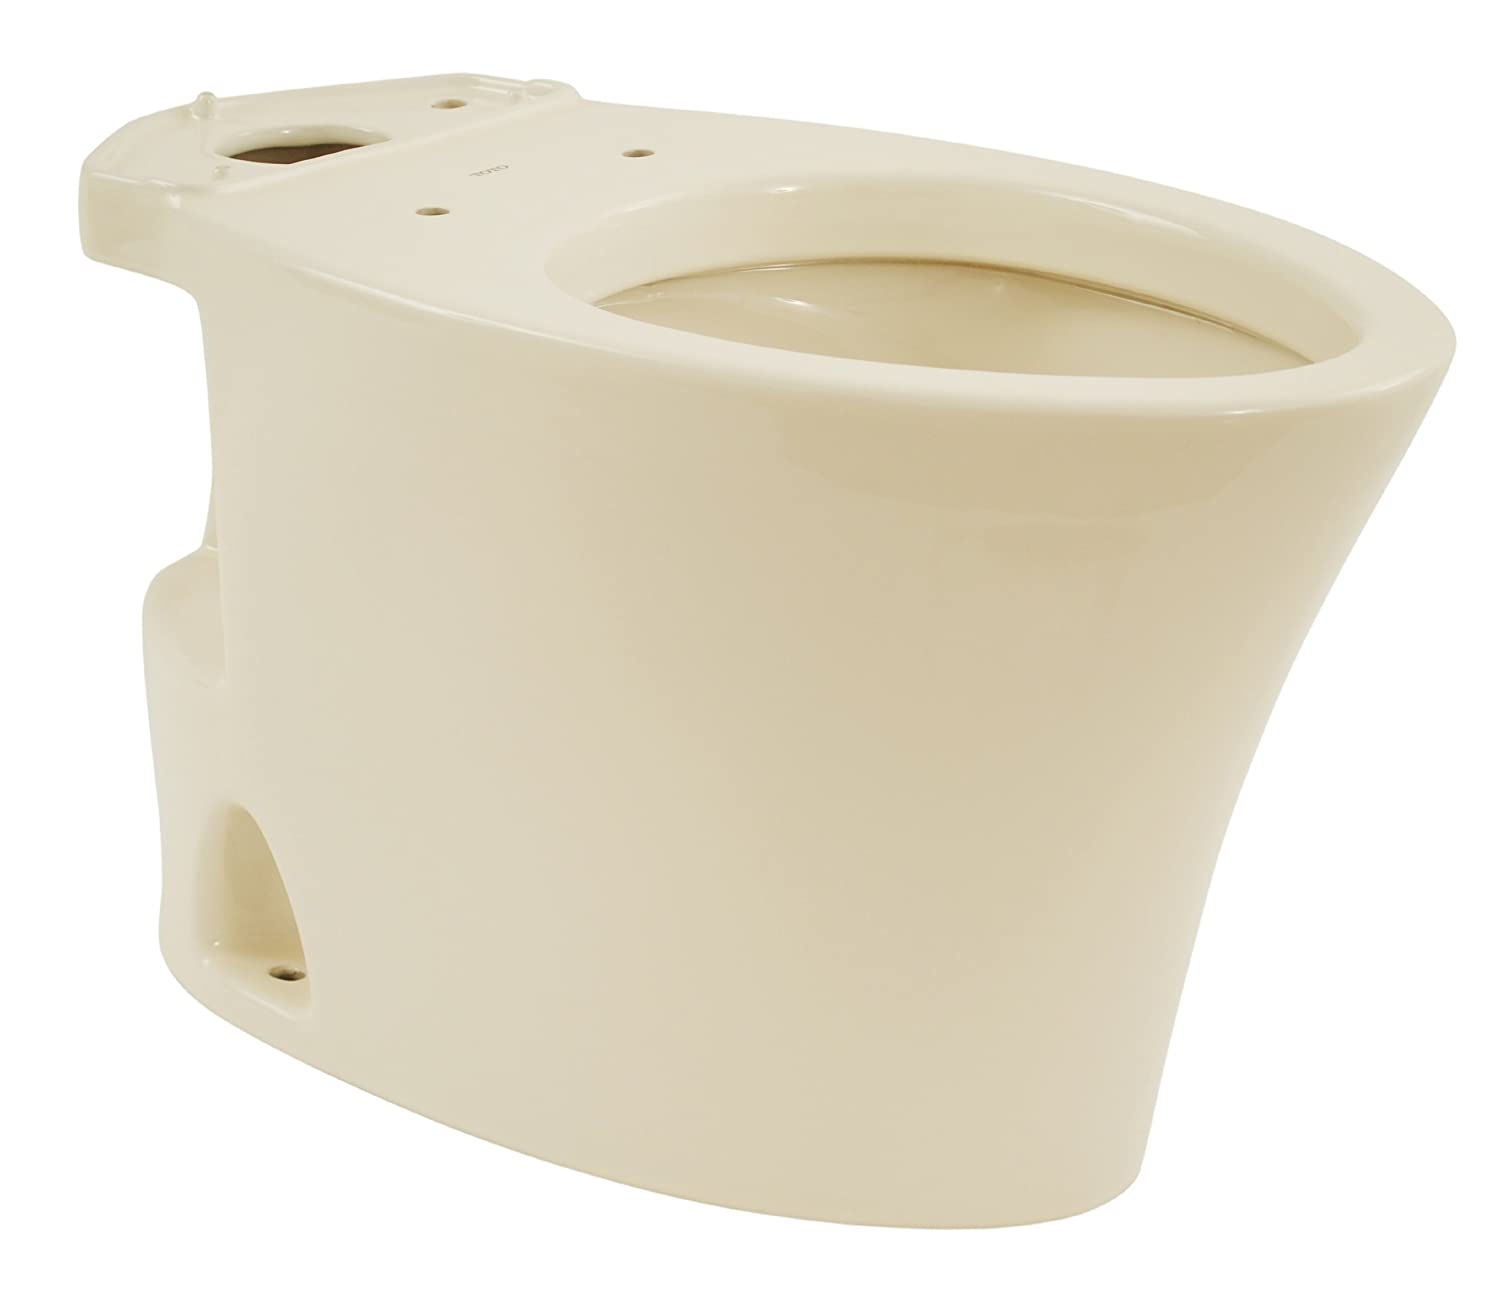 TOTO CT794EF#01 Nexus Elongated Skirted Bowl, Cotton White - Toilet ...